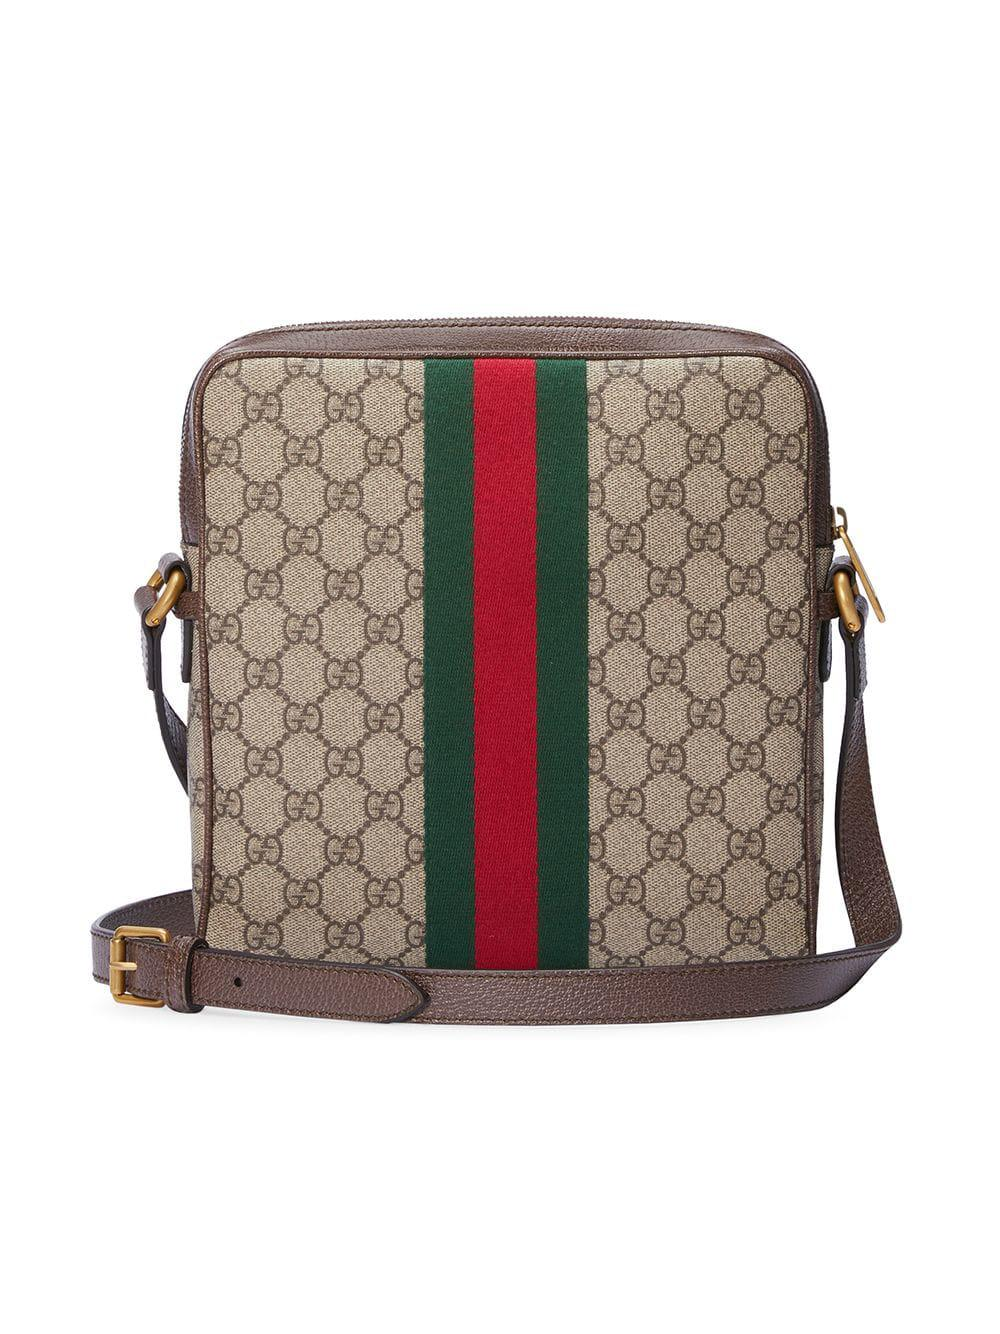 68c405948573 Gucci - Brown Ophidia GG Small Messenger Bag for Men - Lyst. View fullscreen